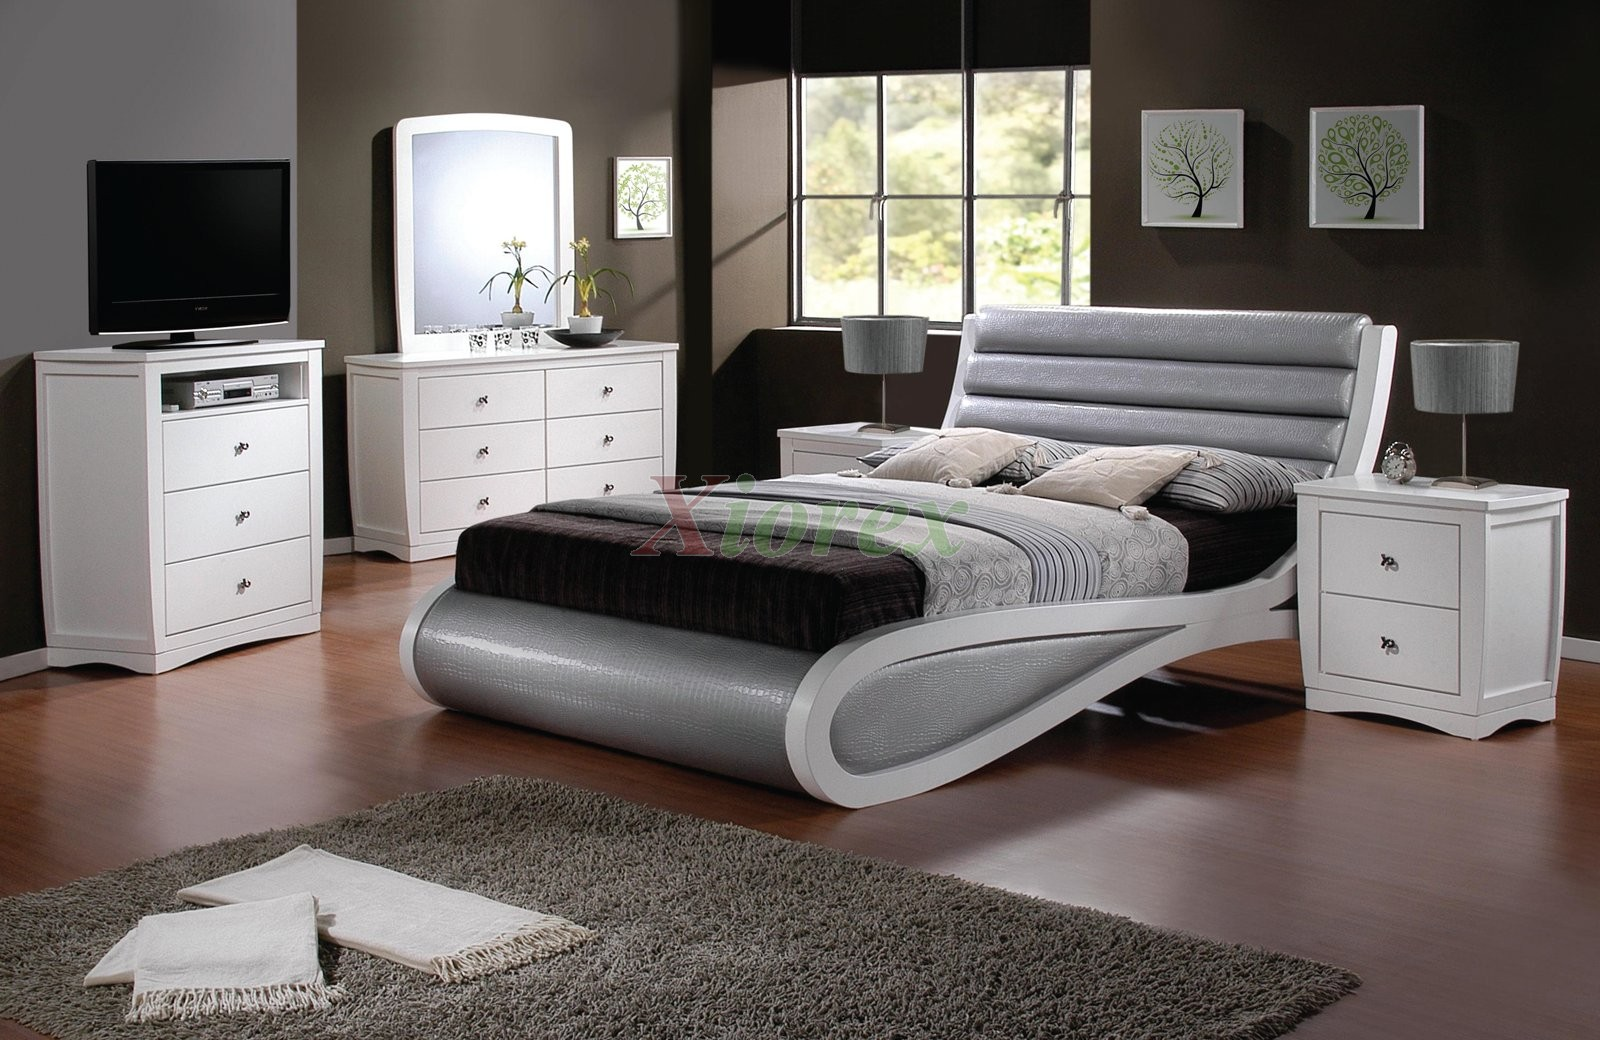 Modern platform bedroom sets - Modern Platform Bedroom Sets 5